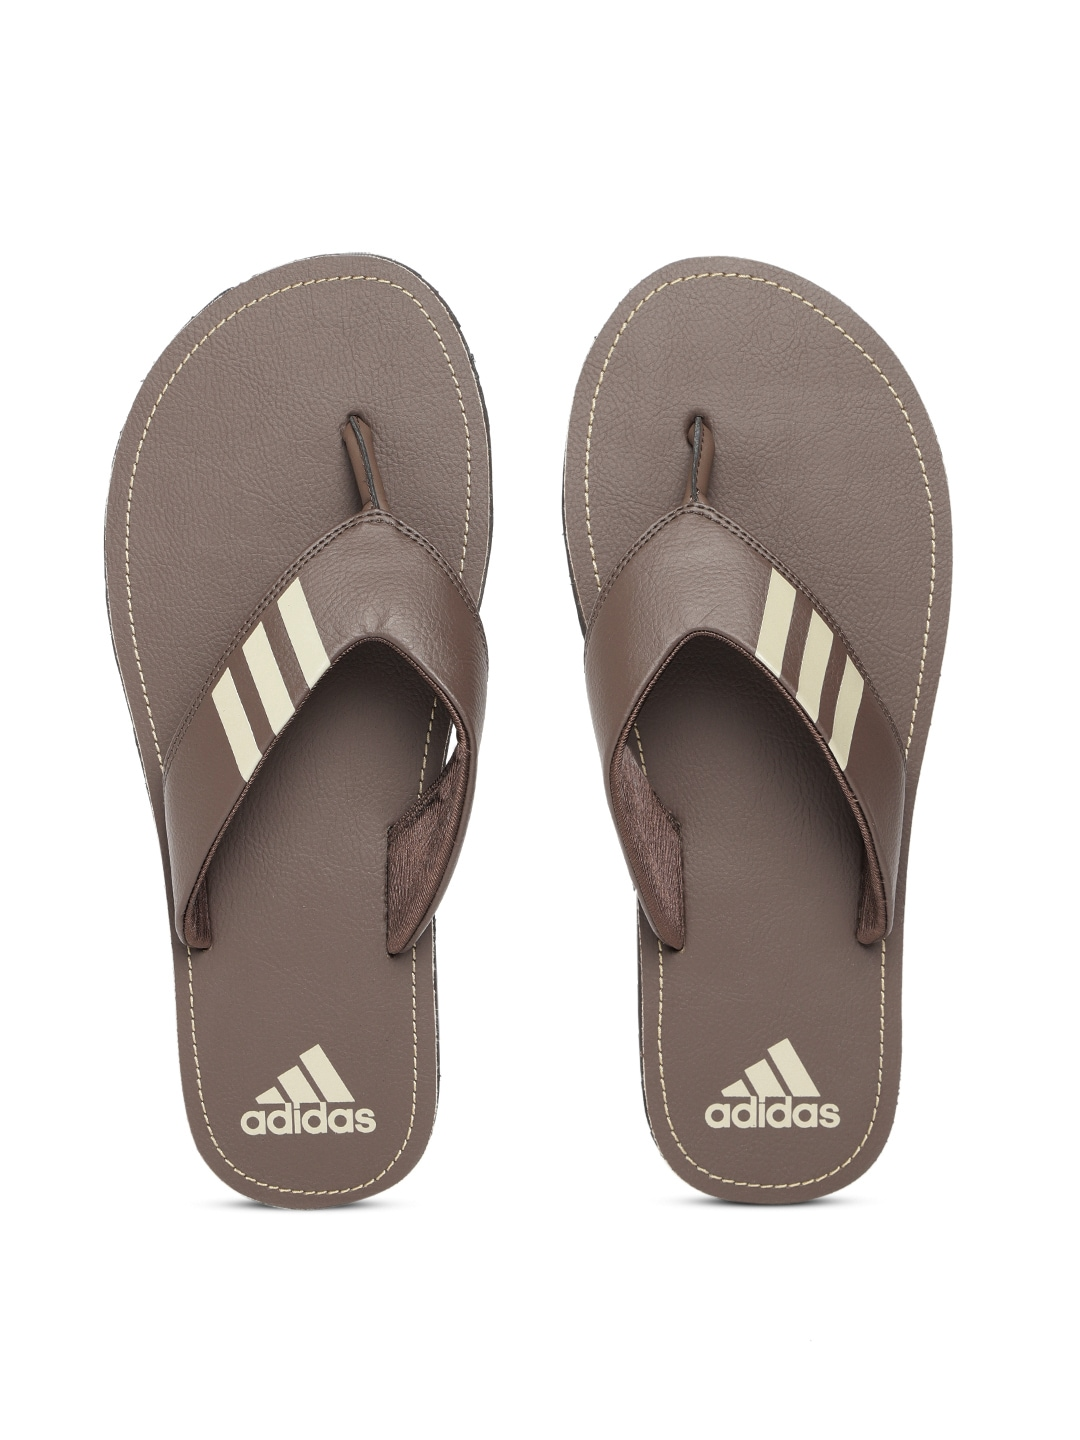 333d5a31f Adidas Slippers - Buy Adidas Slipper   Flip Flops Online India